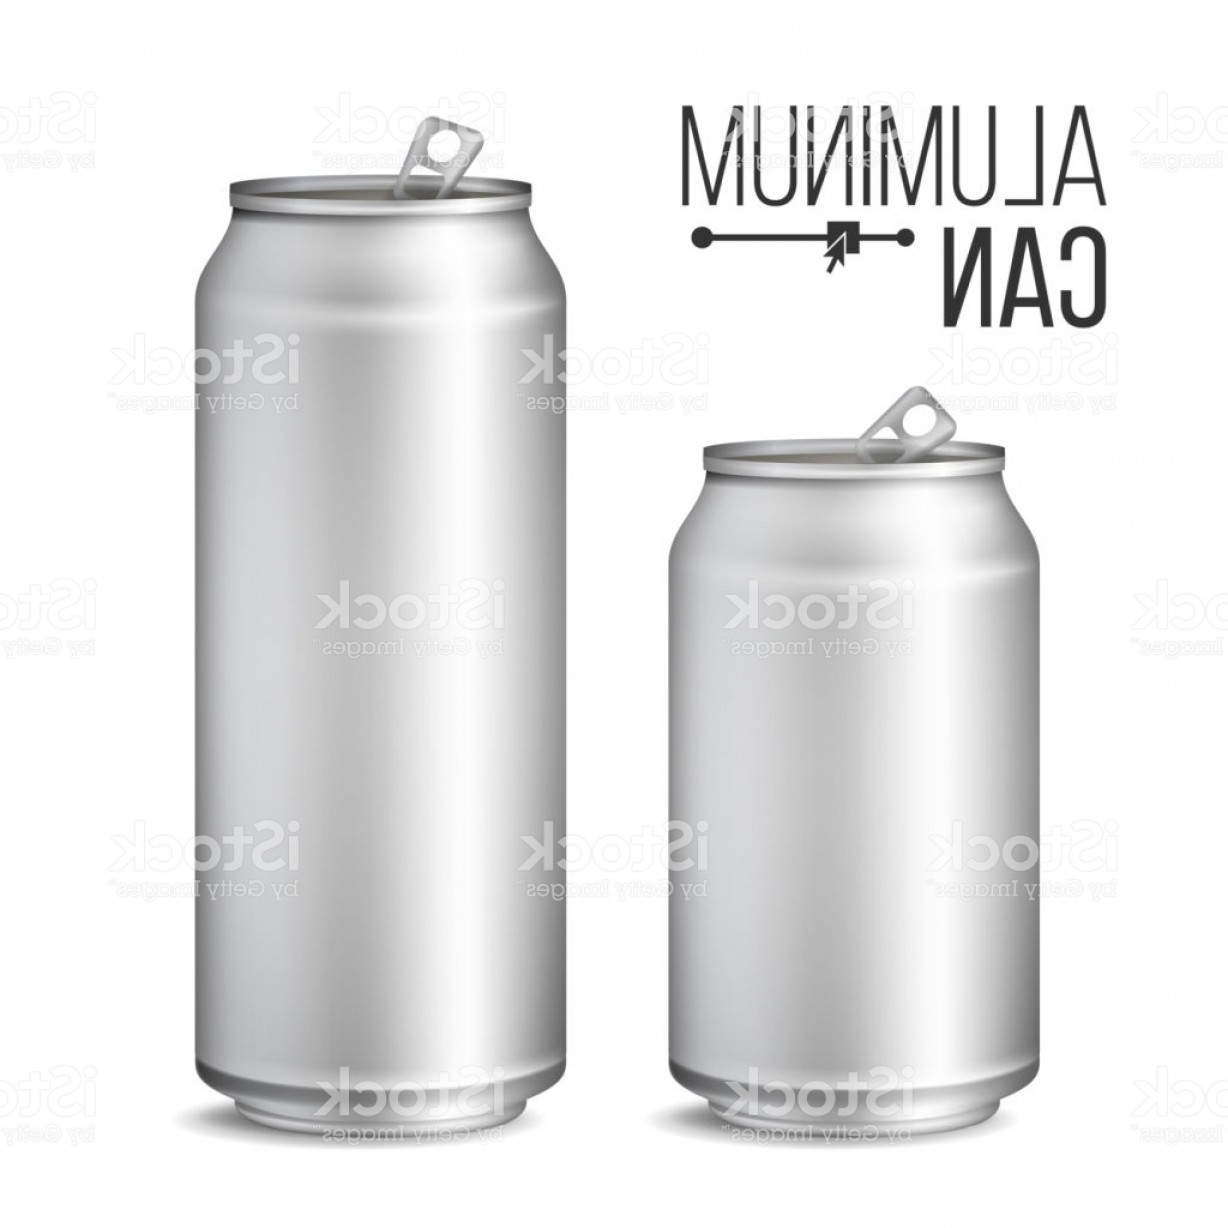 Can Vector: Blank Metallic Can Vector Silver Can D Packaging Mock Up Metallic Cans For Beer Or Gm